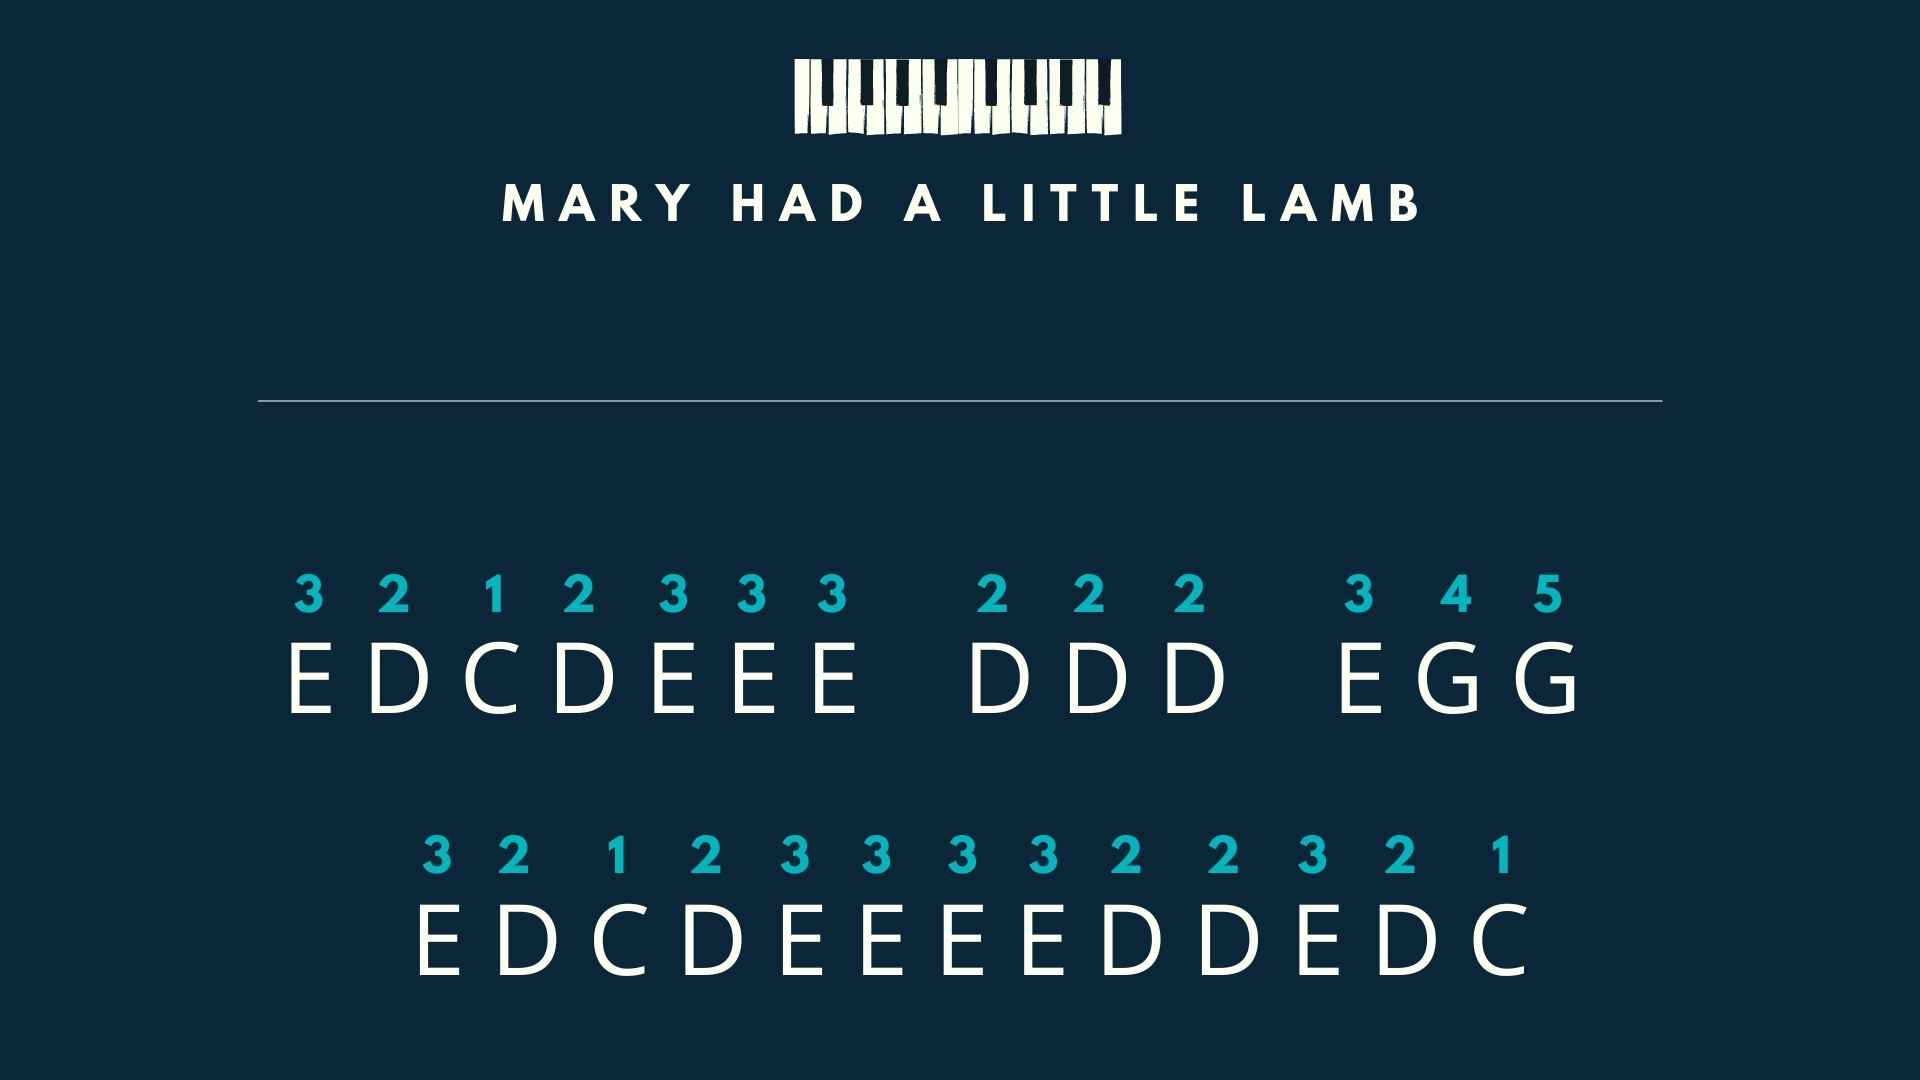 Stage 1 - Mary Had a Little Lamb melody